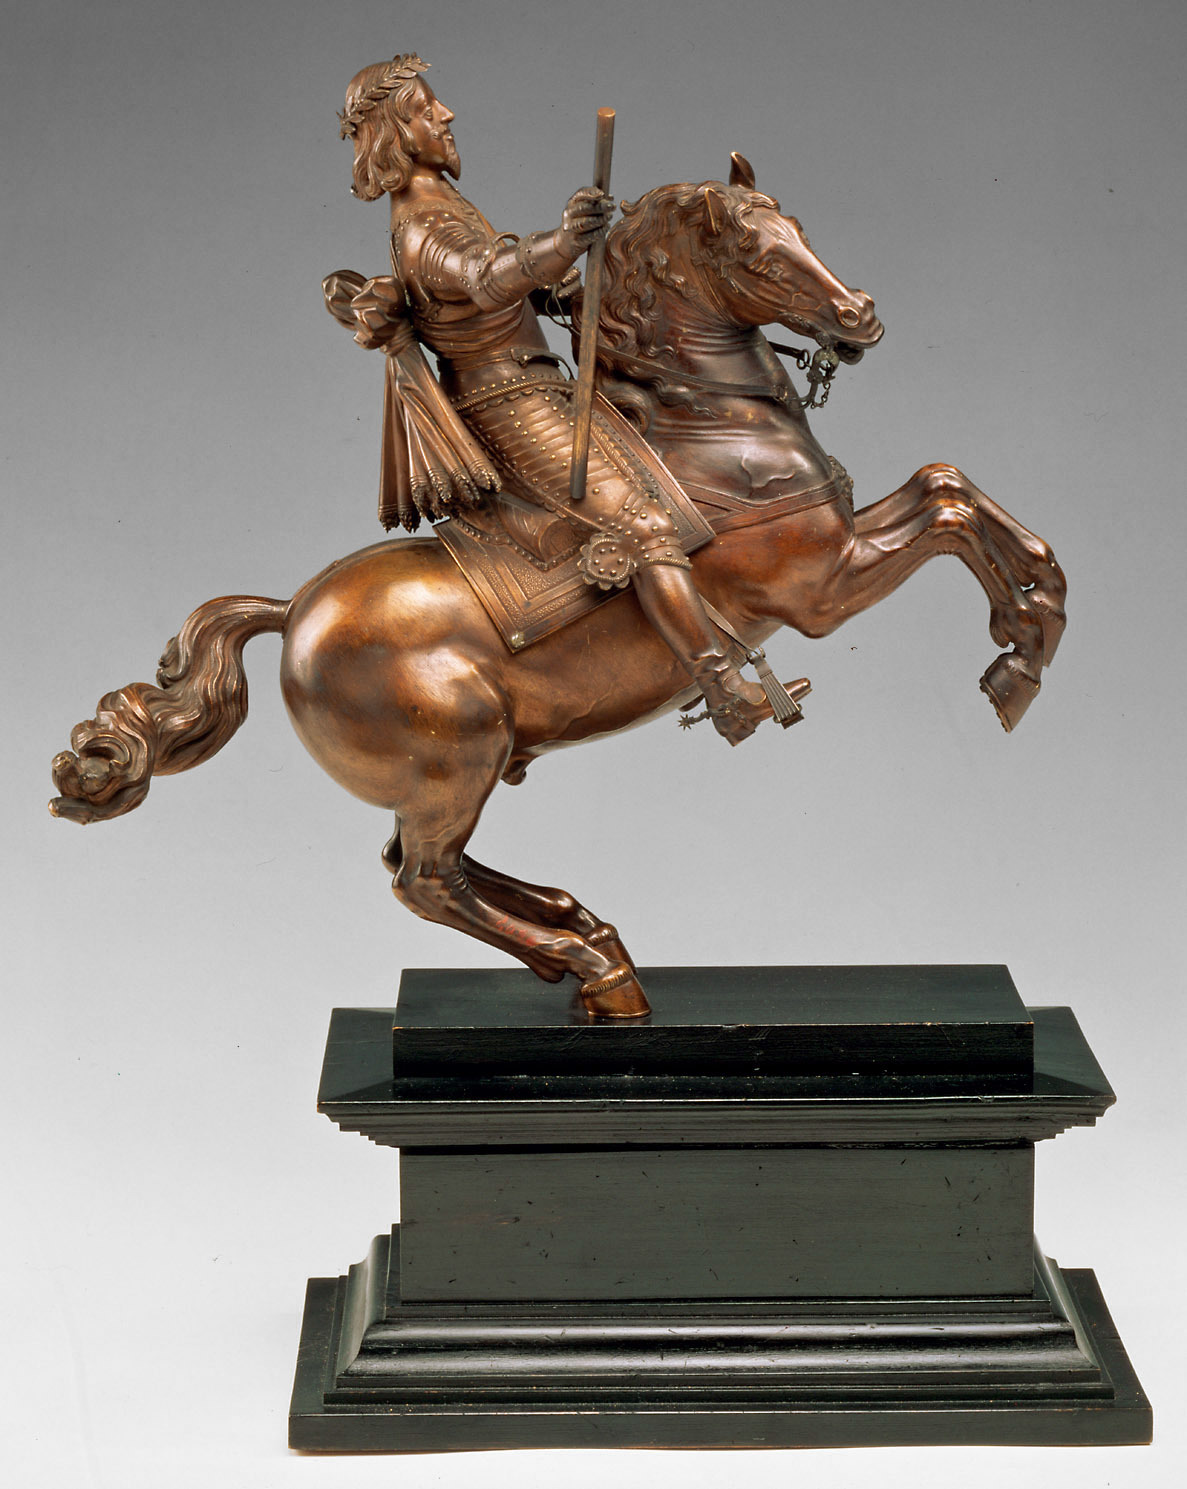 Emperor Ferdinand III on horseback, 2nd quarter of the 17th century, Caspar Gras